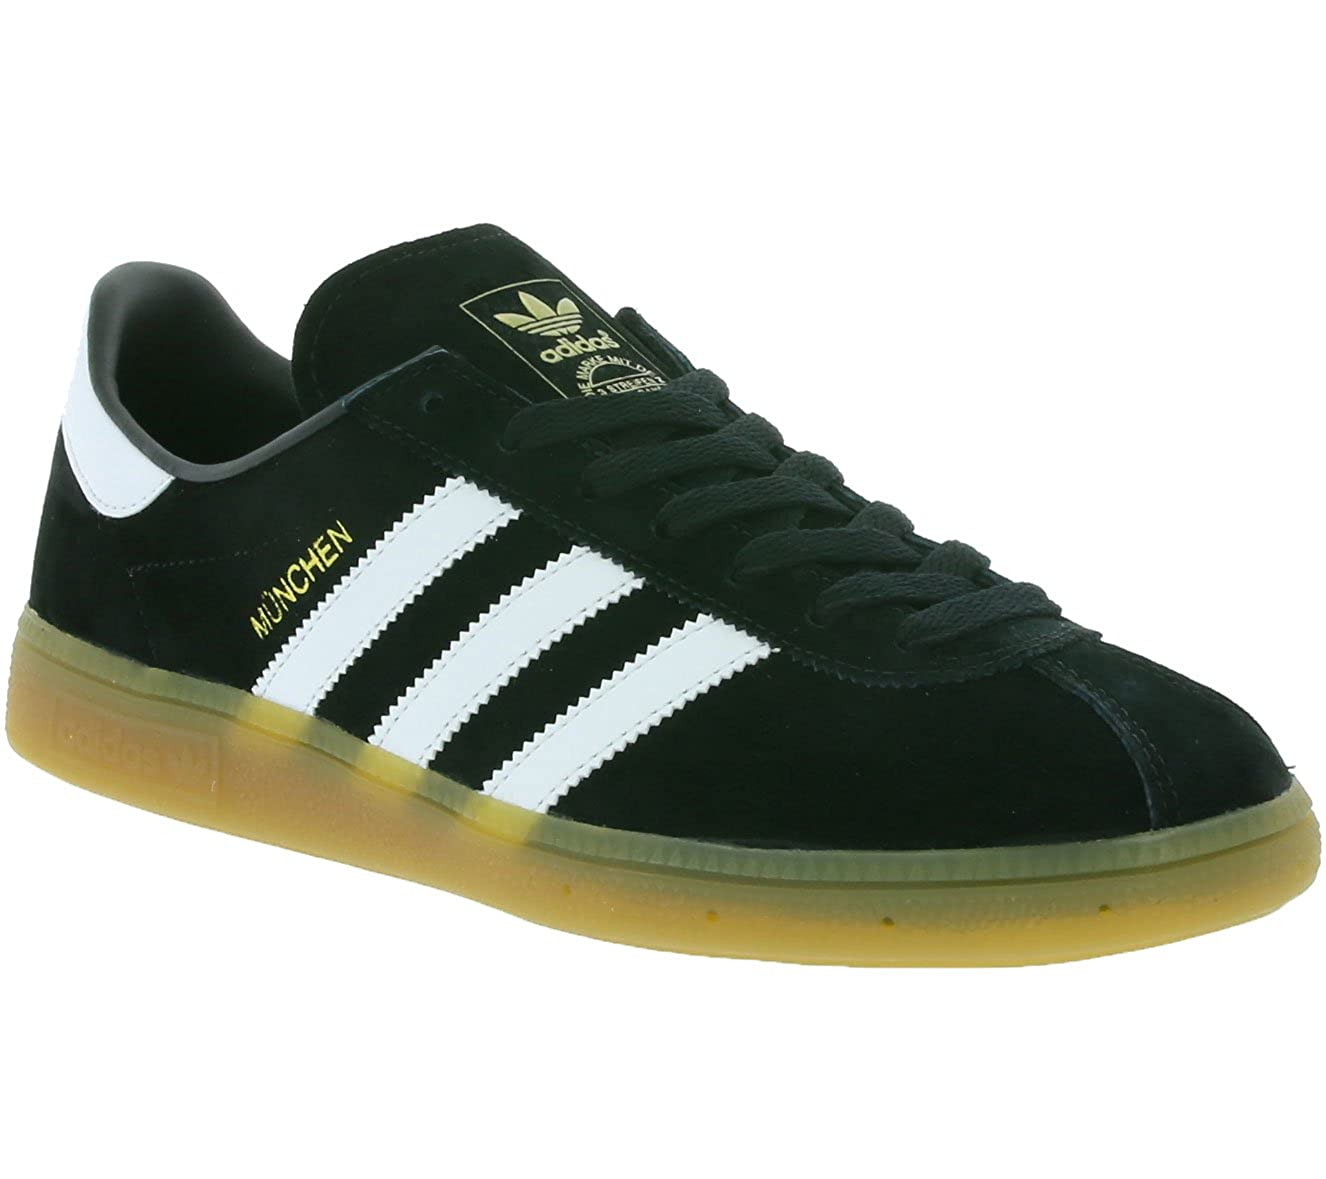 adidas Originals Herren Sneakers Sobakov grün 46 23: Amazon